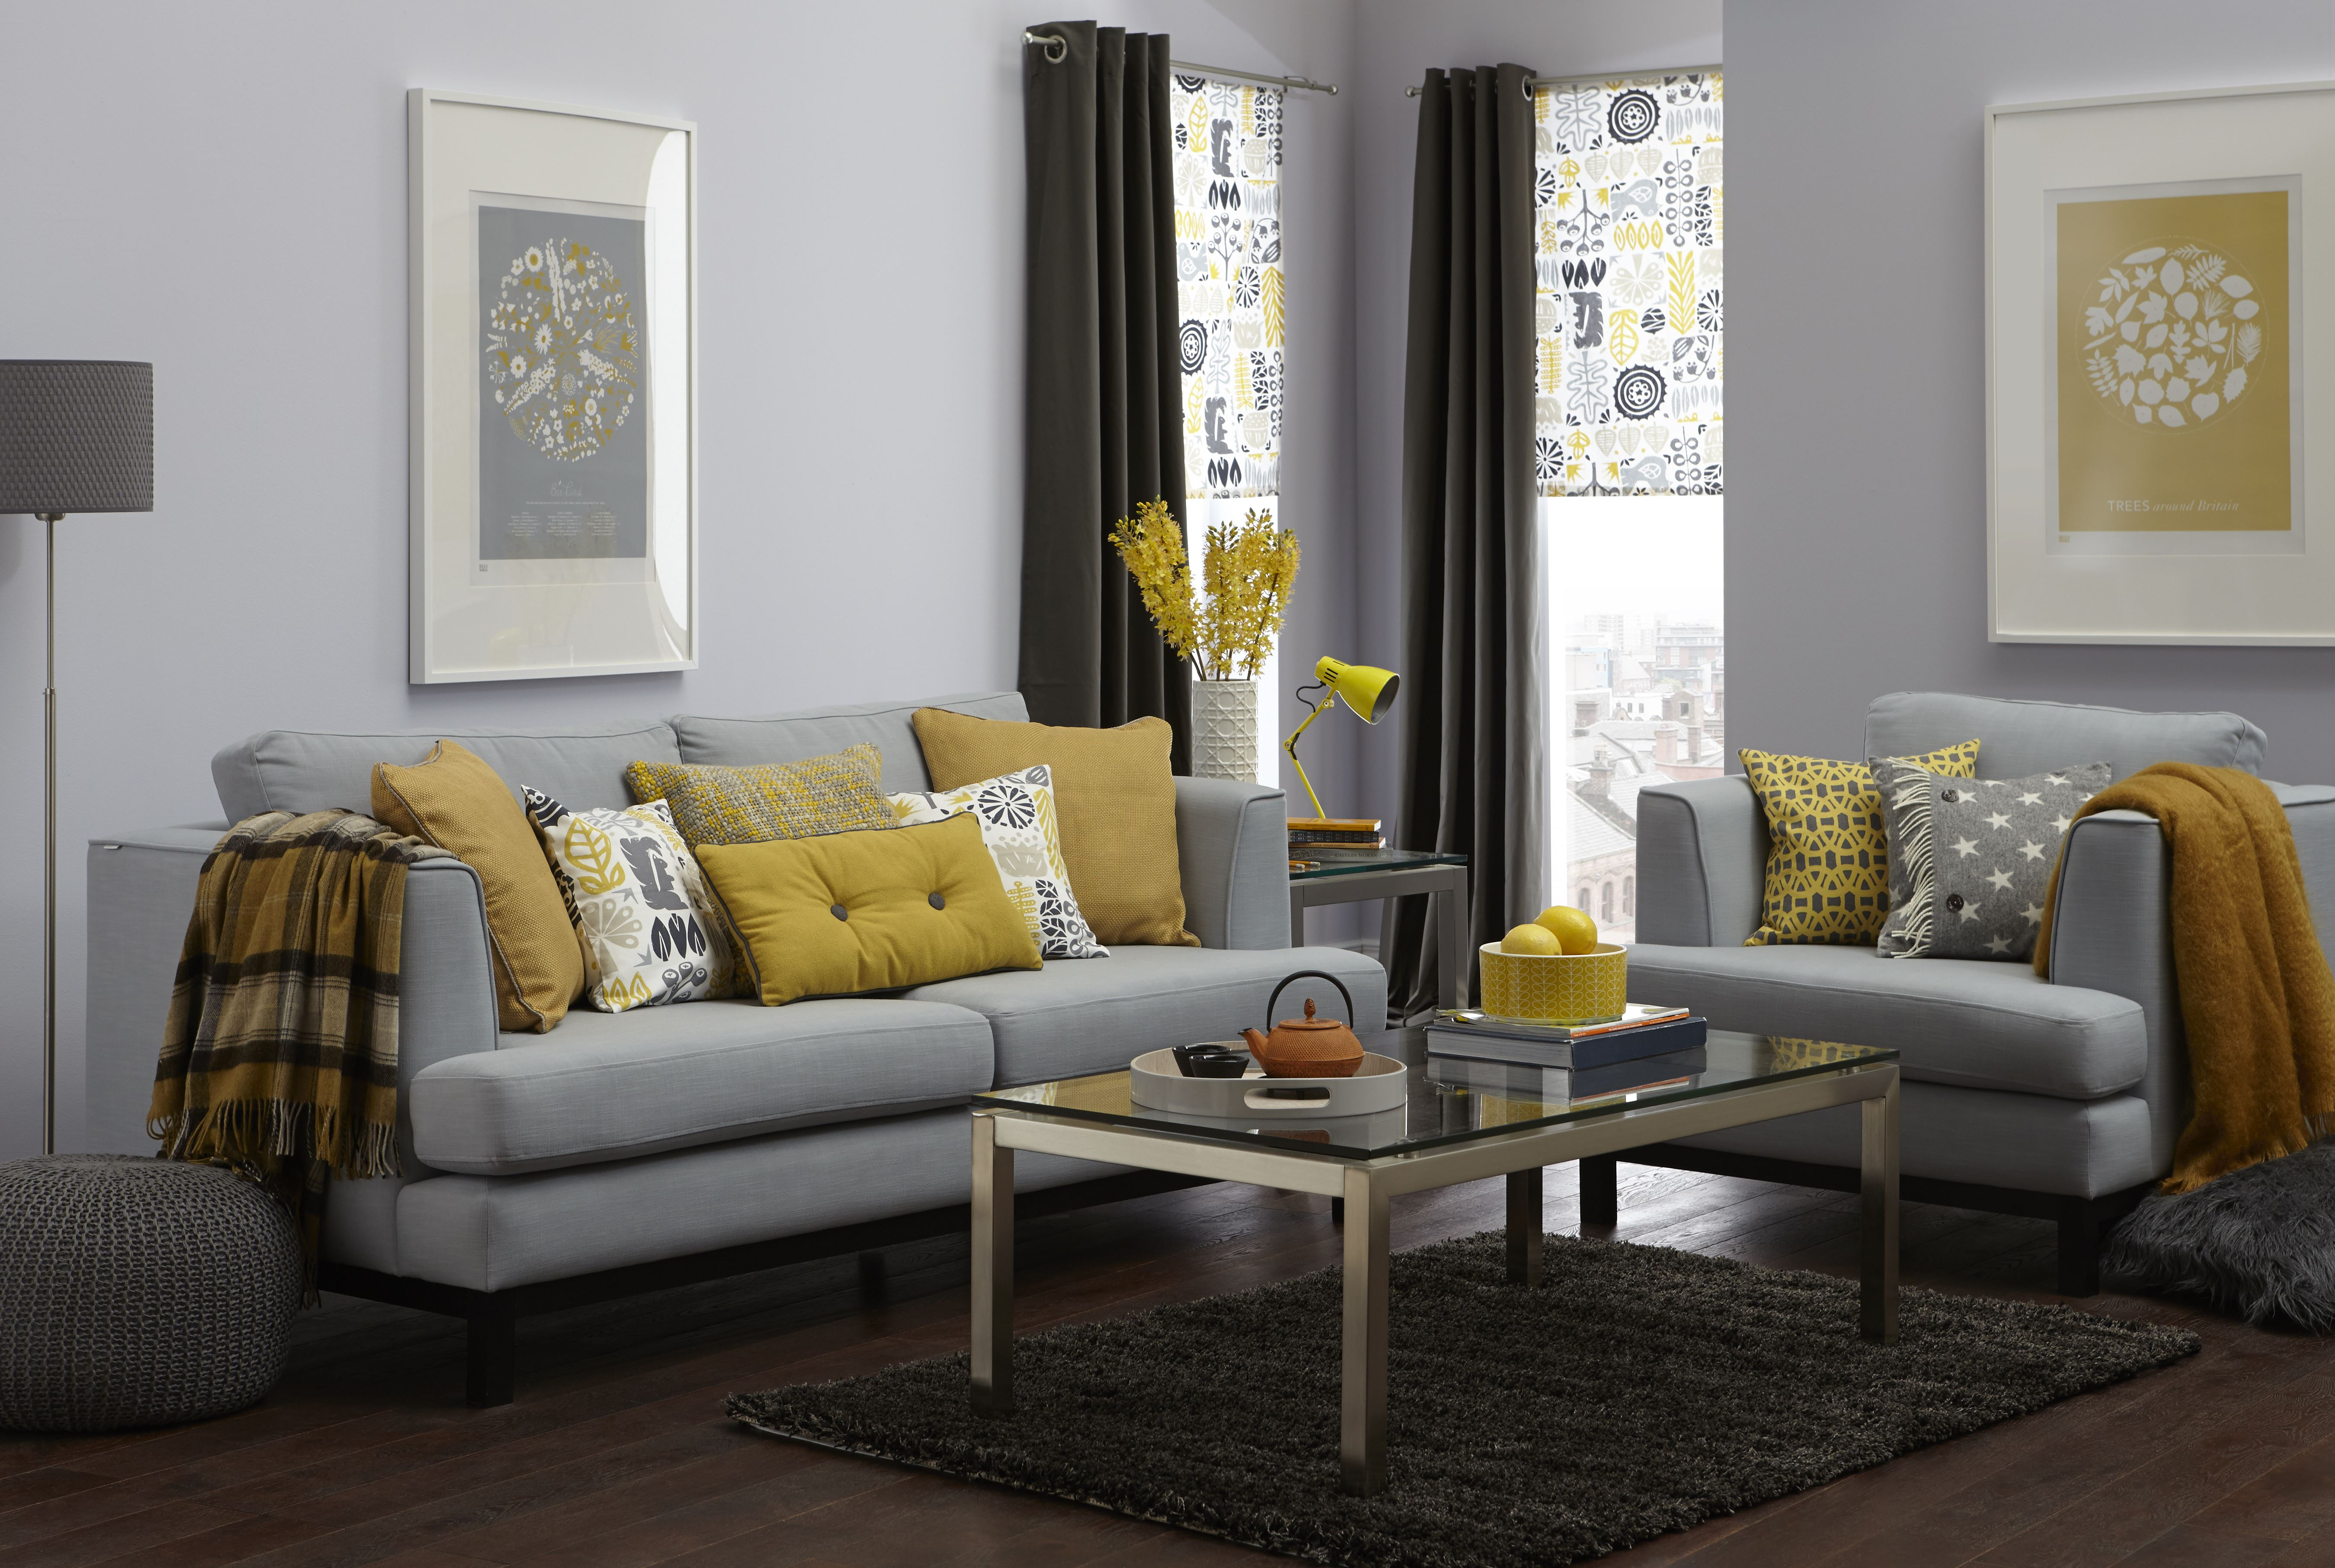 Yellow And Gray Living Room Decorating With Grey And Yellow The Treasure Hunter